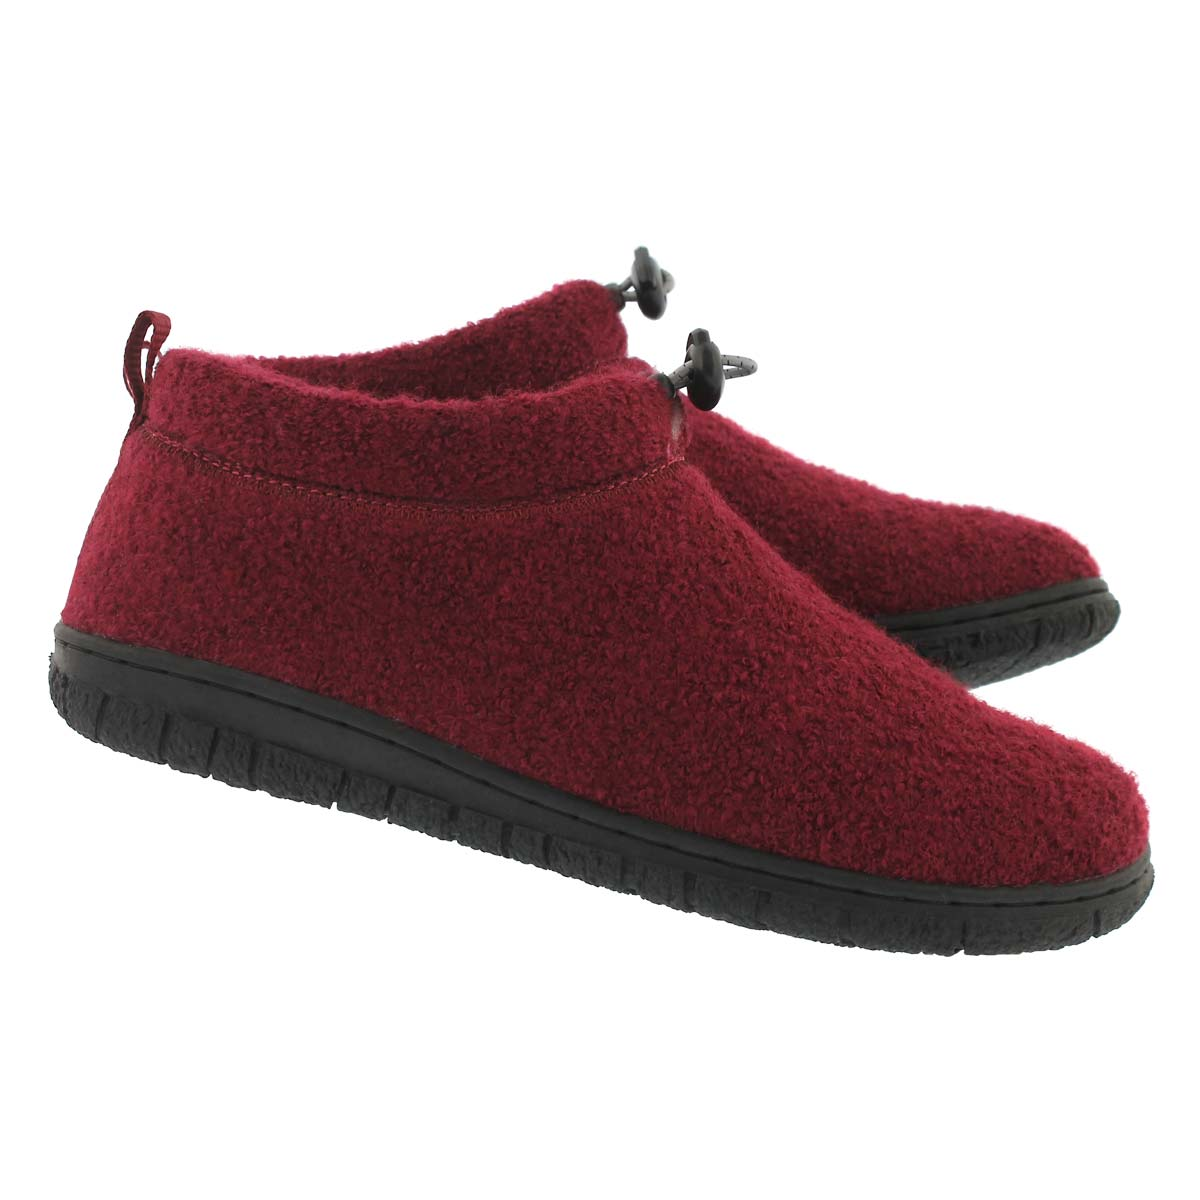 Lds Nancy bgdy mem foam clsd bck slipper